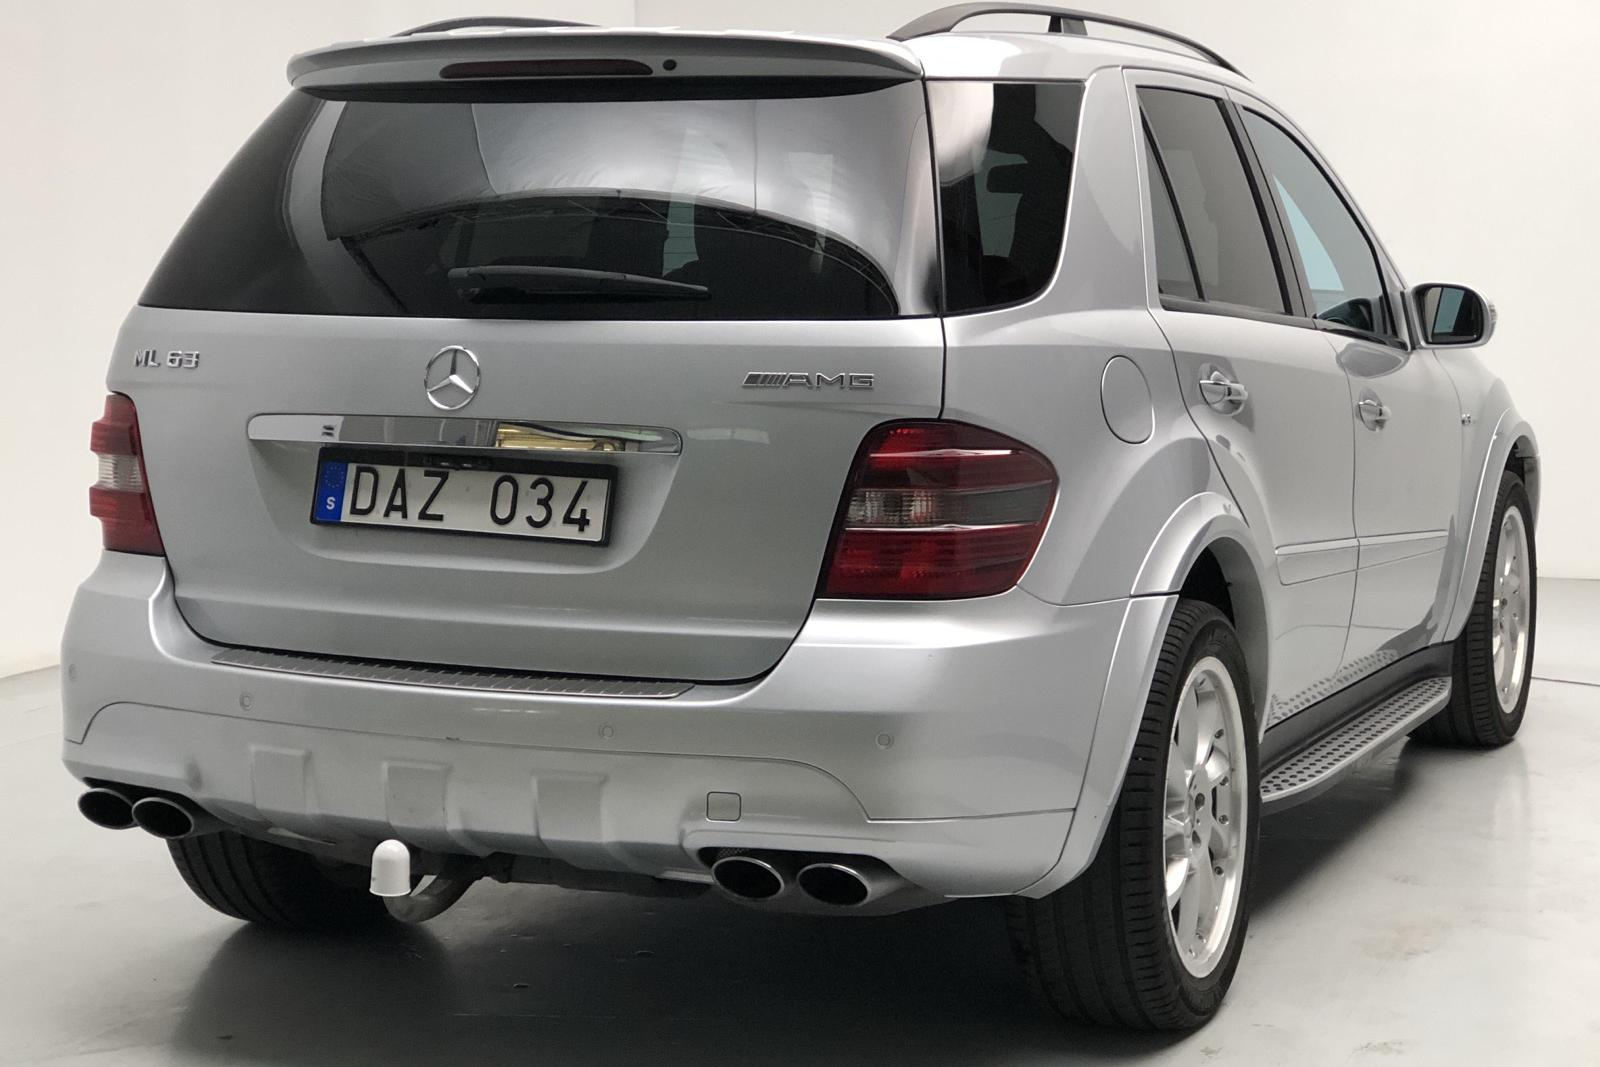 Mercedes ML 63 AMG (510hk) - 220 000 km - Automatic - silver - 2007